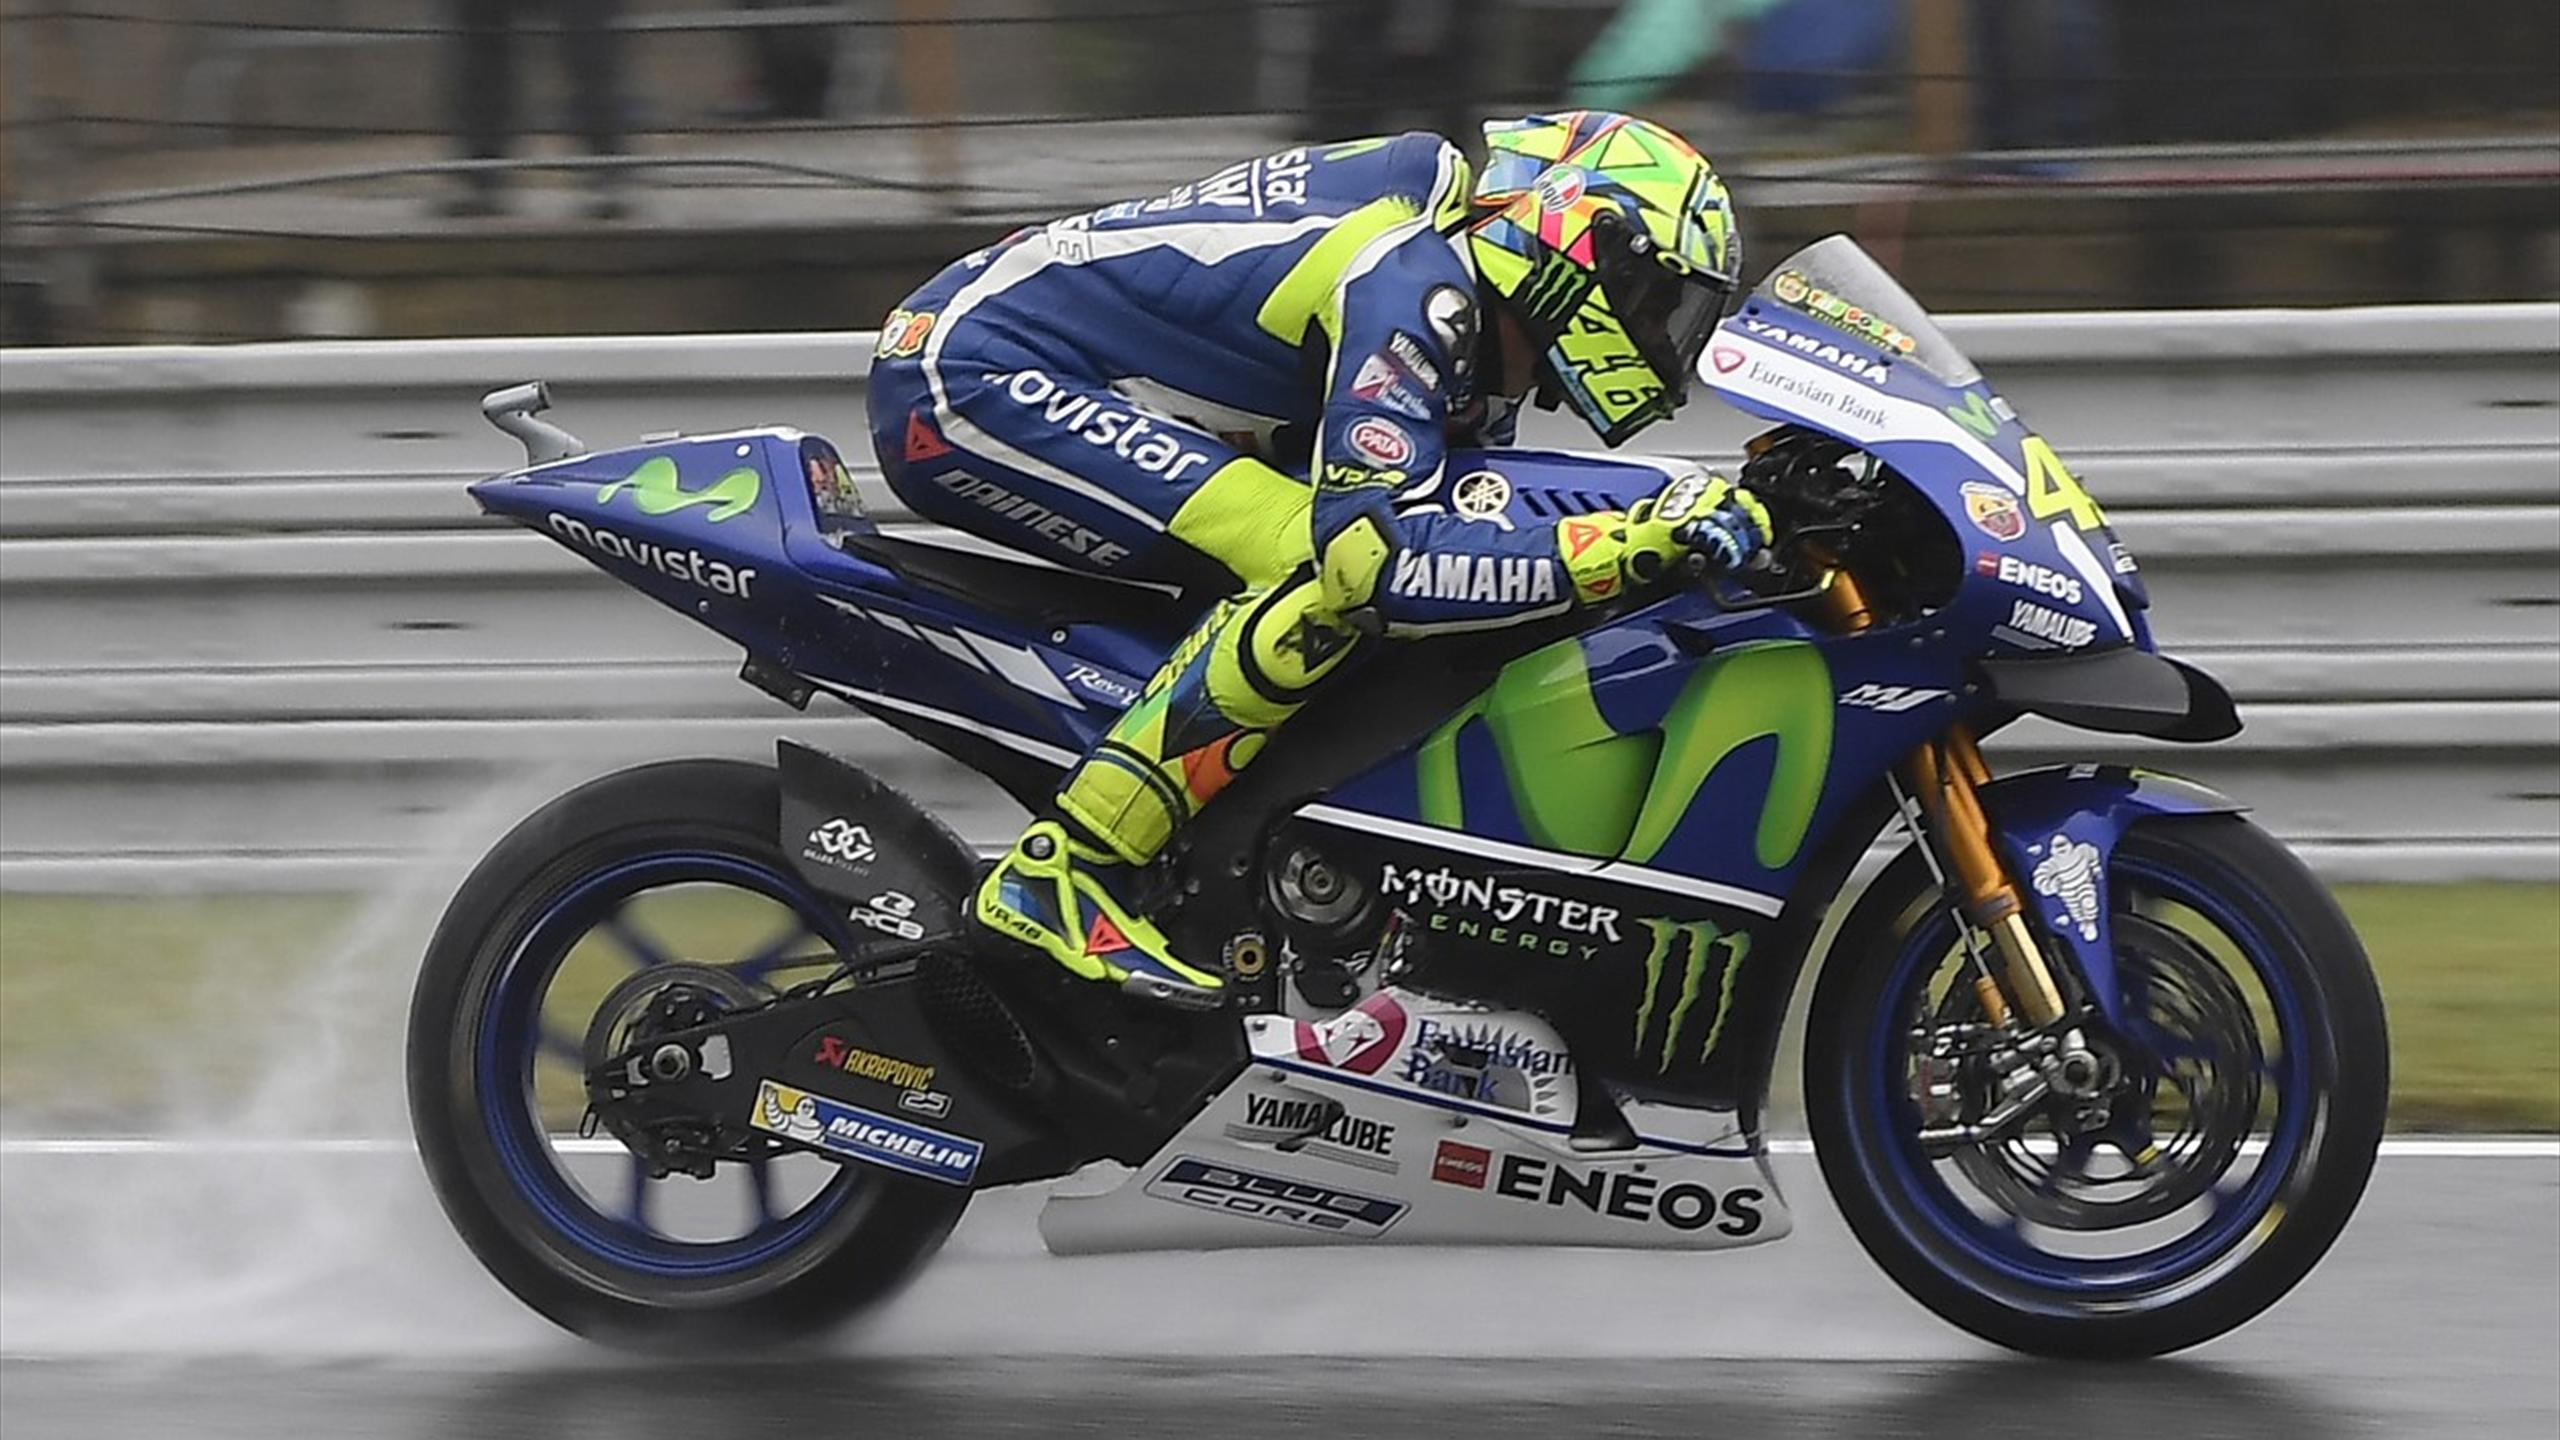 Valentino Rossi (Yamaha Factory) during Czech GP 2016